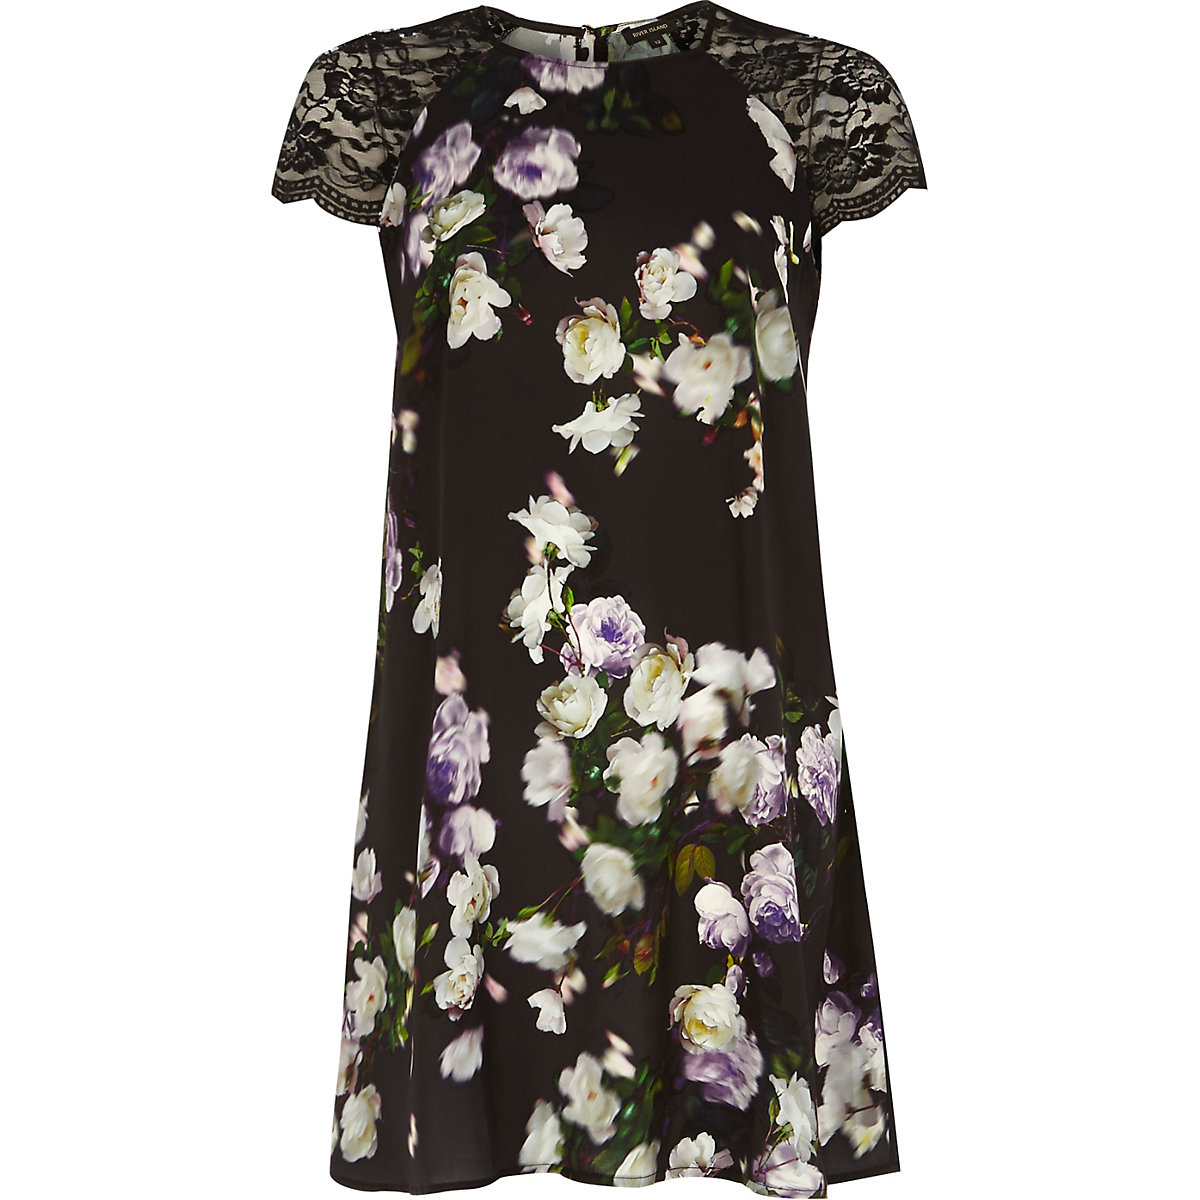 Black lace sleeve floral swing dress